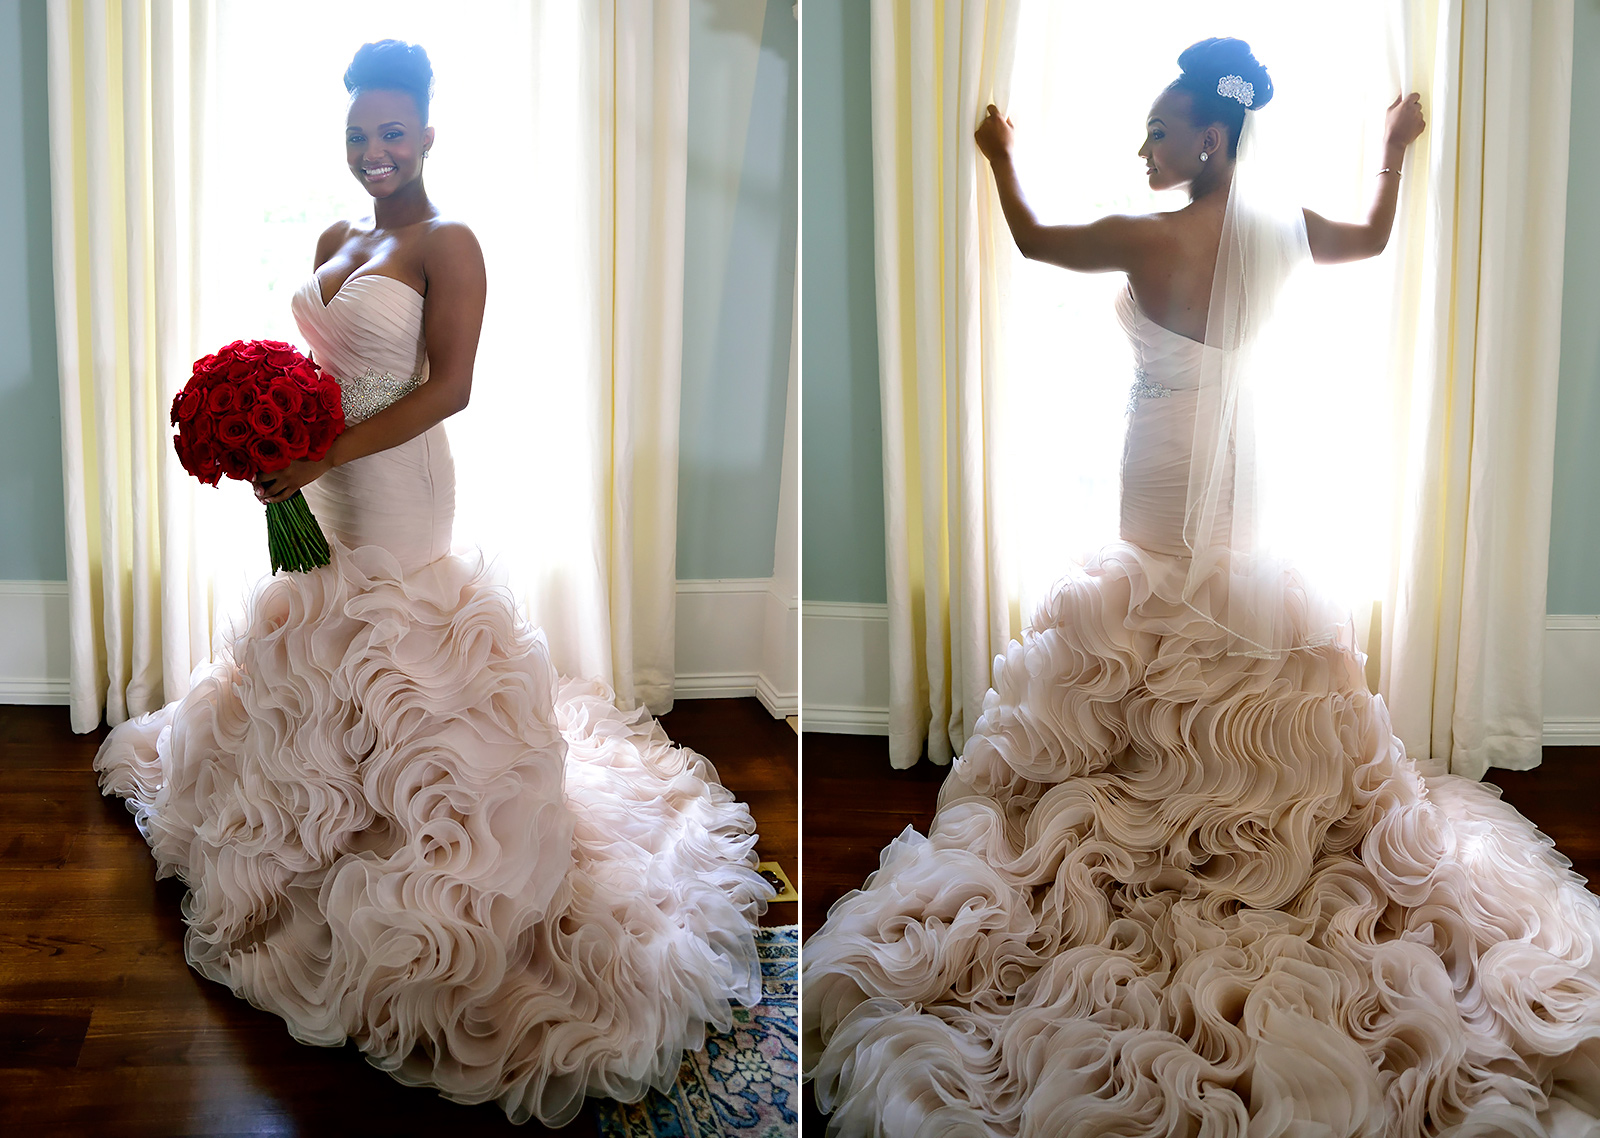 married at first sight wedding dresses get the look champagne colored wedding dress Vanessa wore a champagne colored wedding dress to marry Tres on Married at First Sight